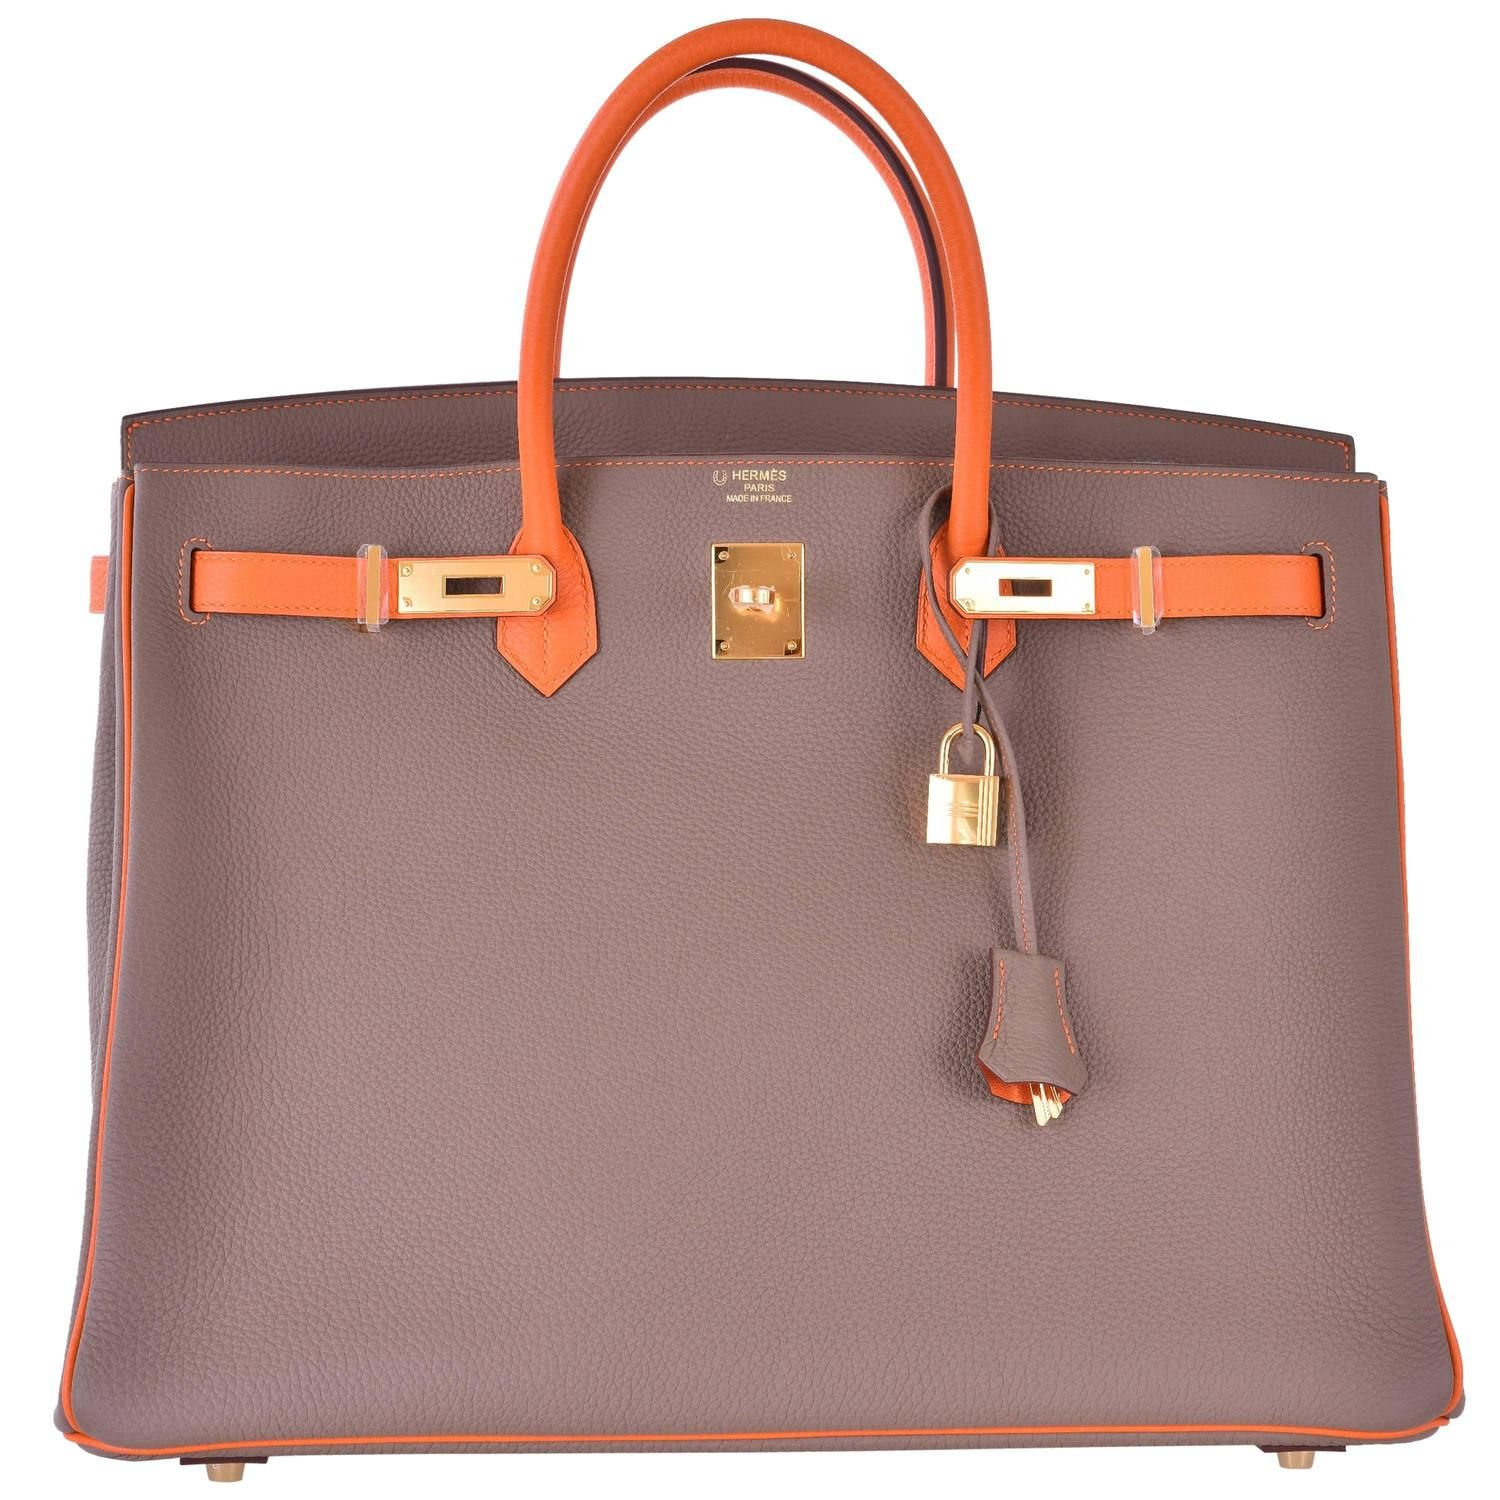 8d6677e4476d Hermes Birkin Bag Etoupe 40cm Special Order with Orange Gold Hardware  JaneFinds For Sale at 1stdibs